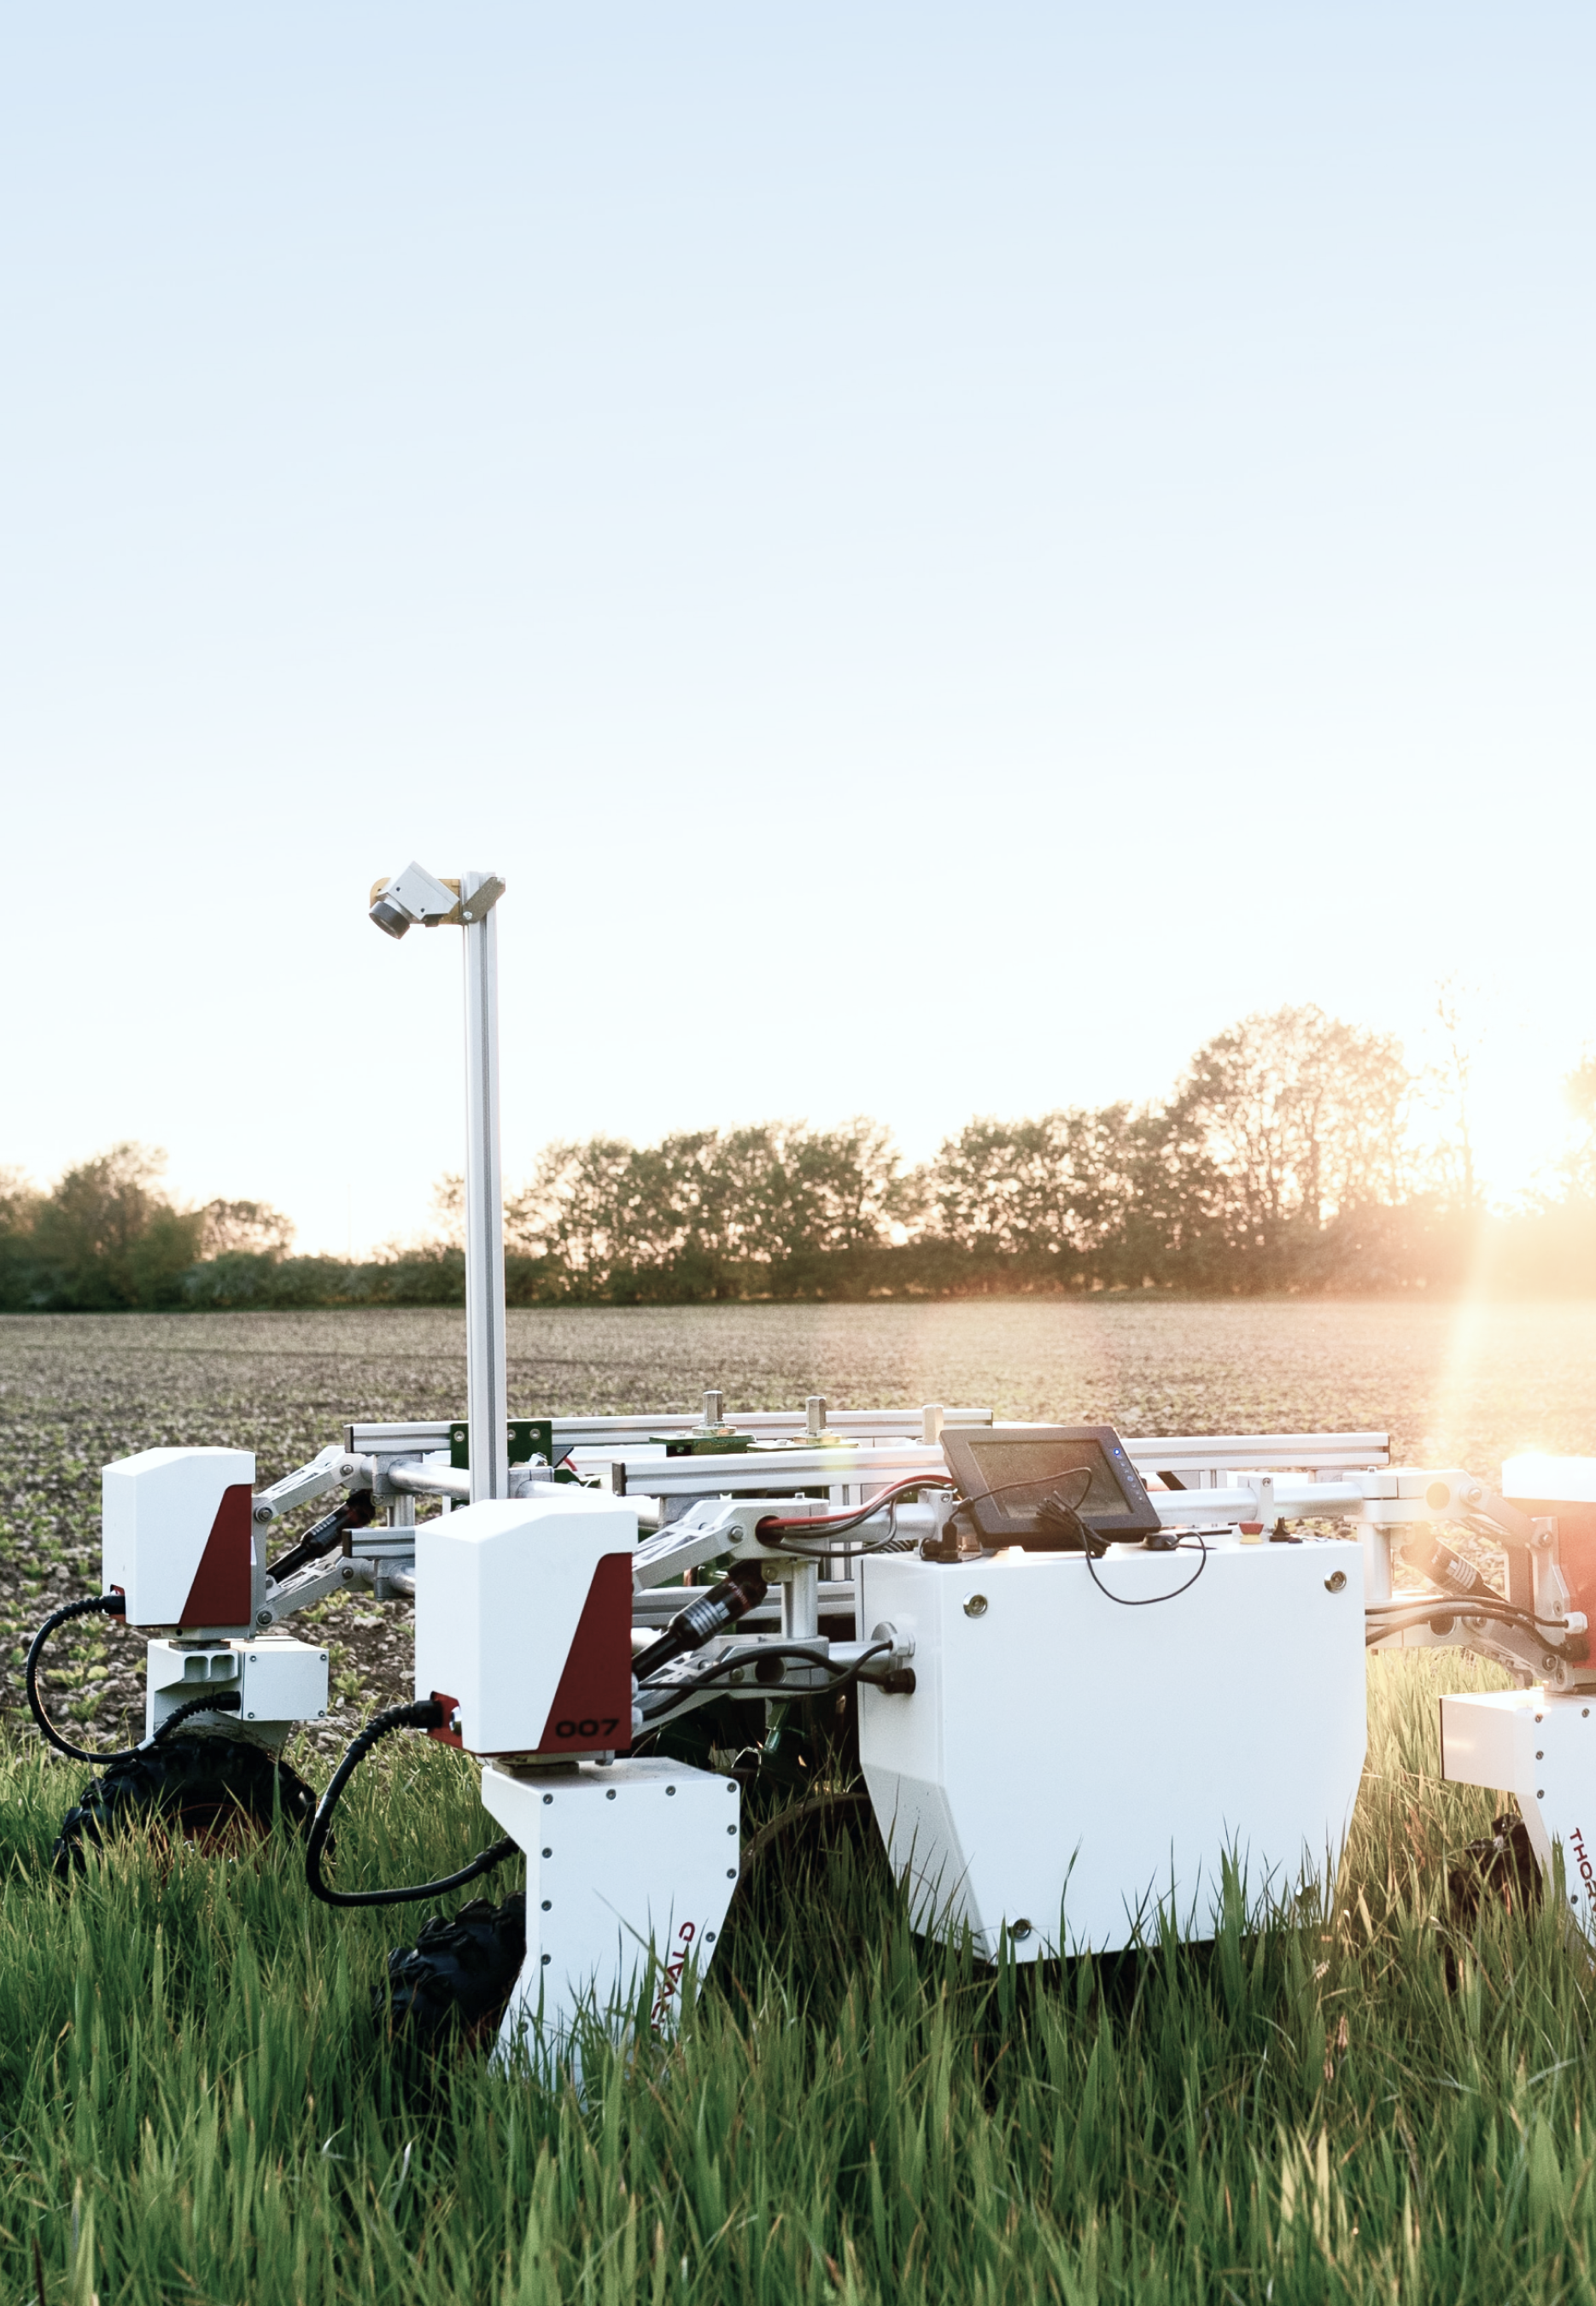 A large wheeled scanning and farming robot in a large green field